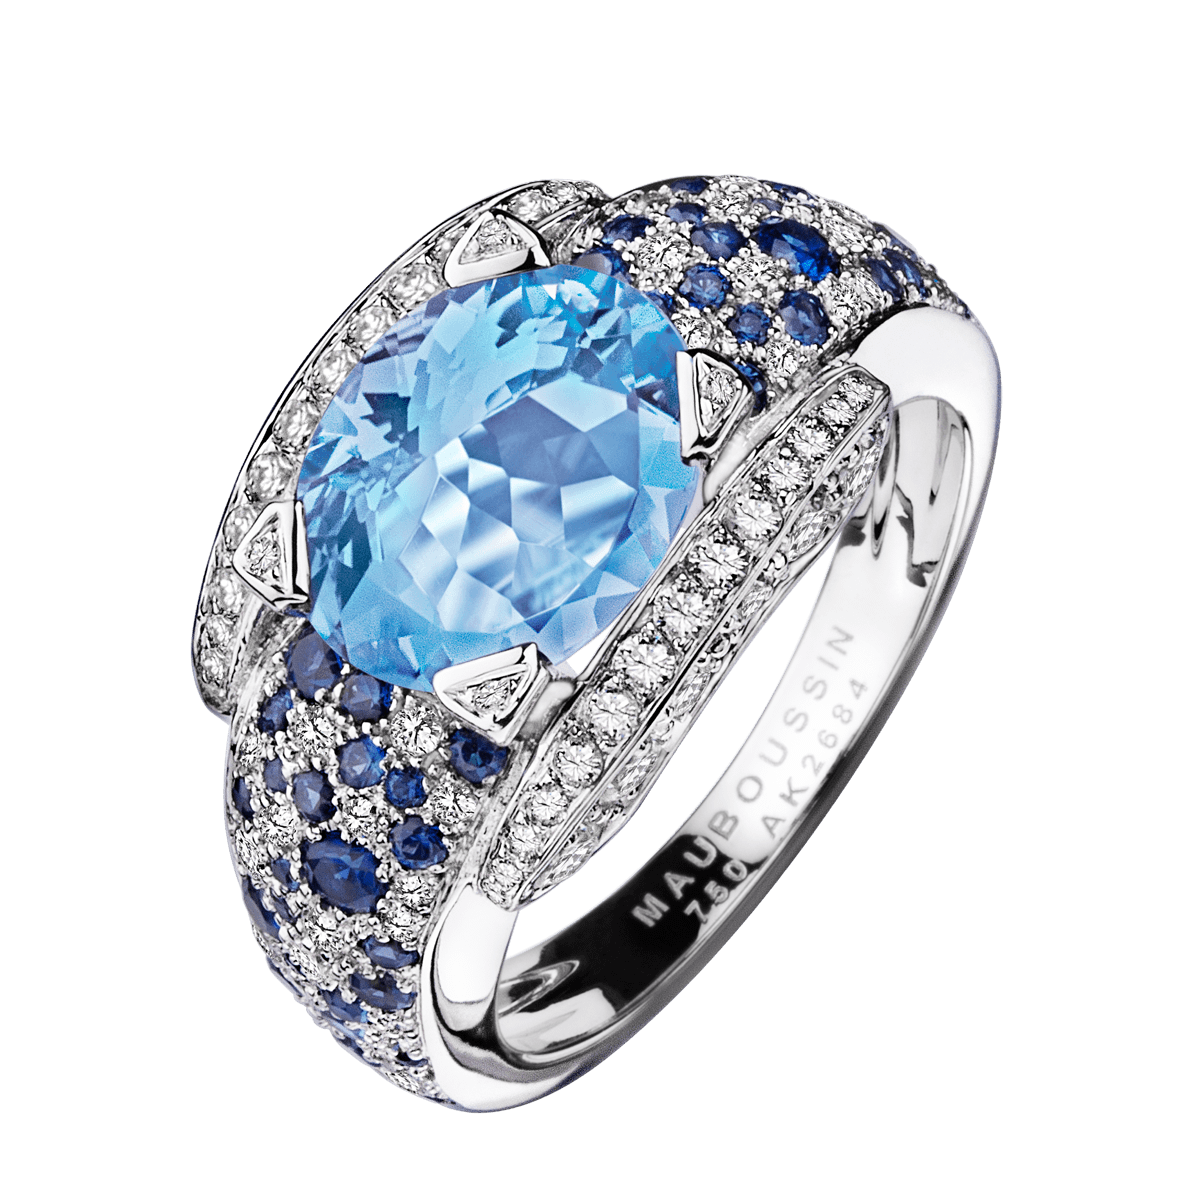 Souvent Bague Eternité Elégance,or blanc, Aigue Marine et diamants  QG47